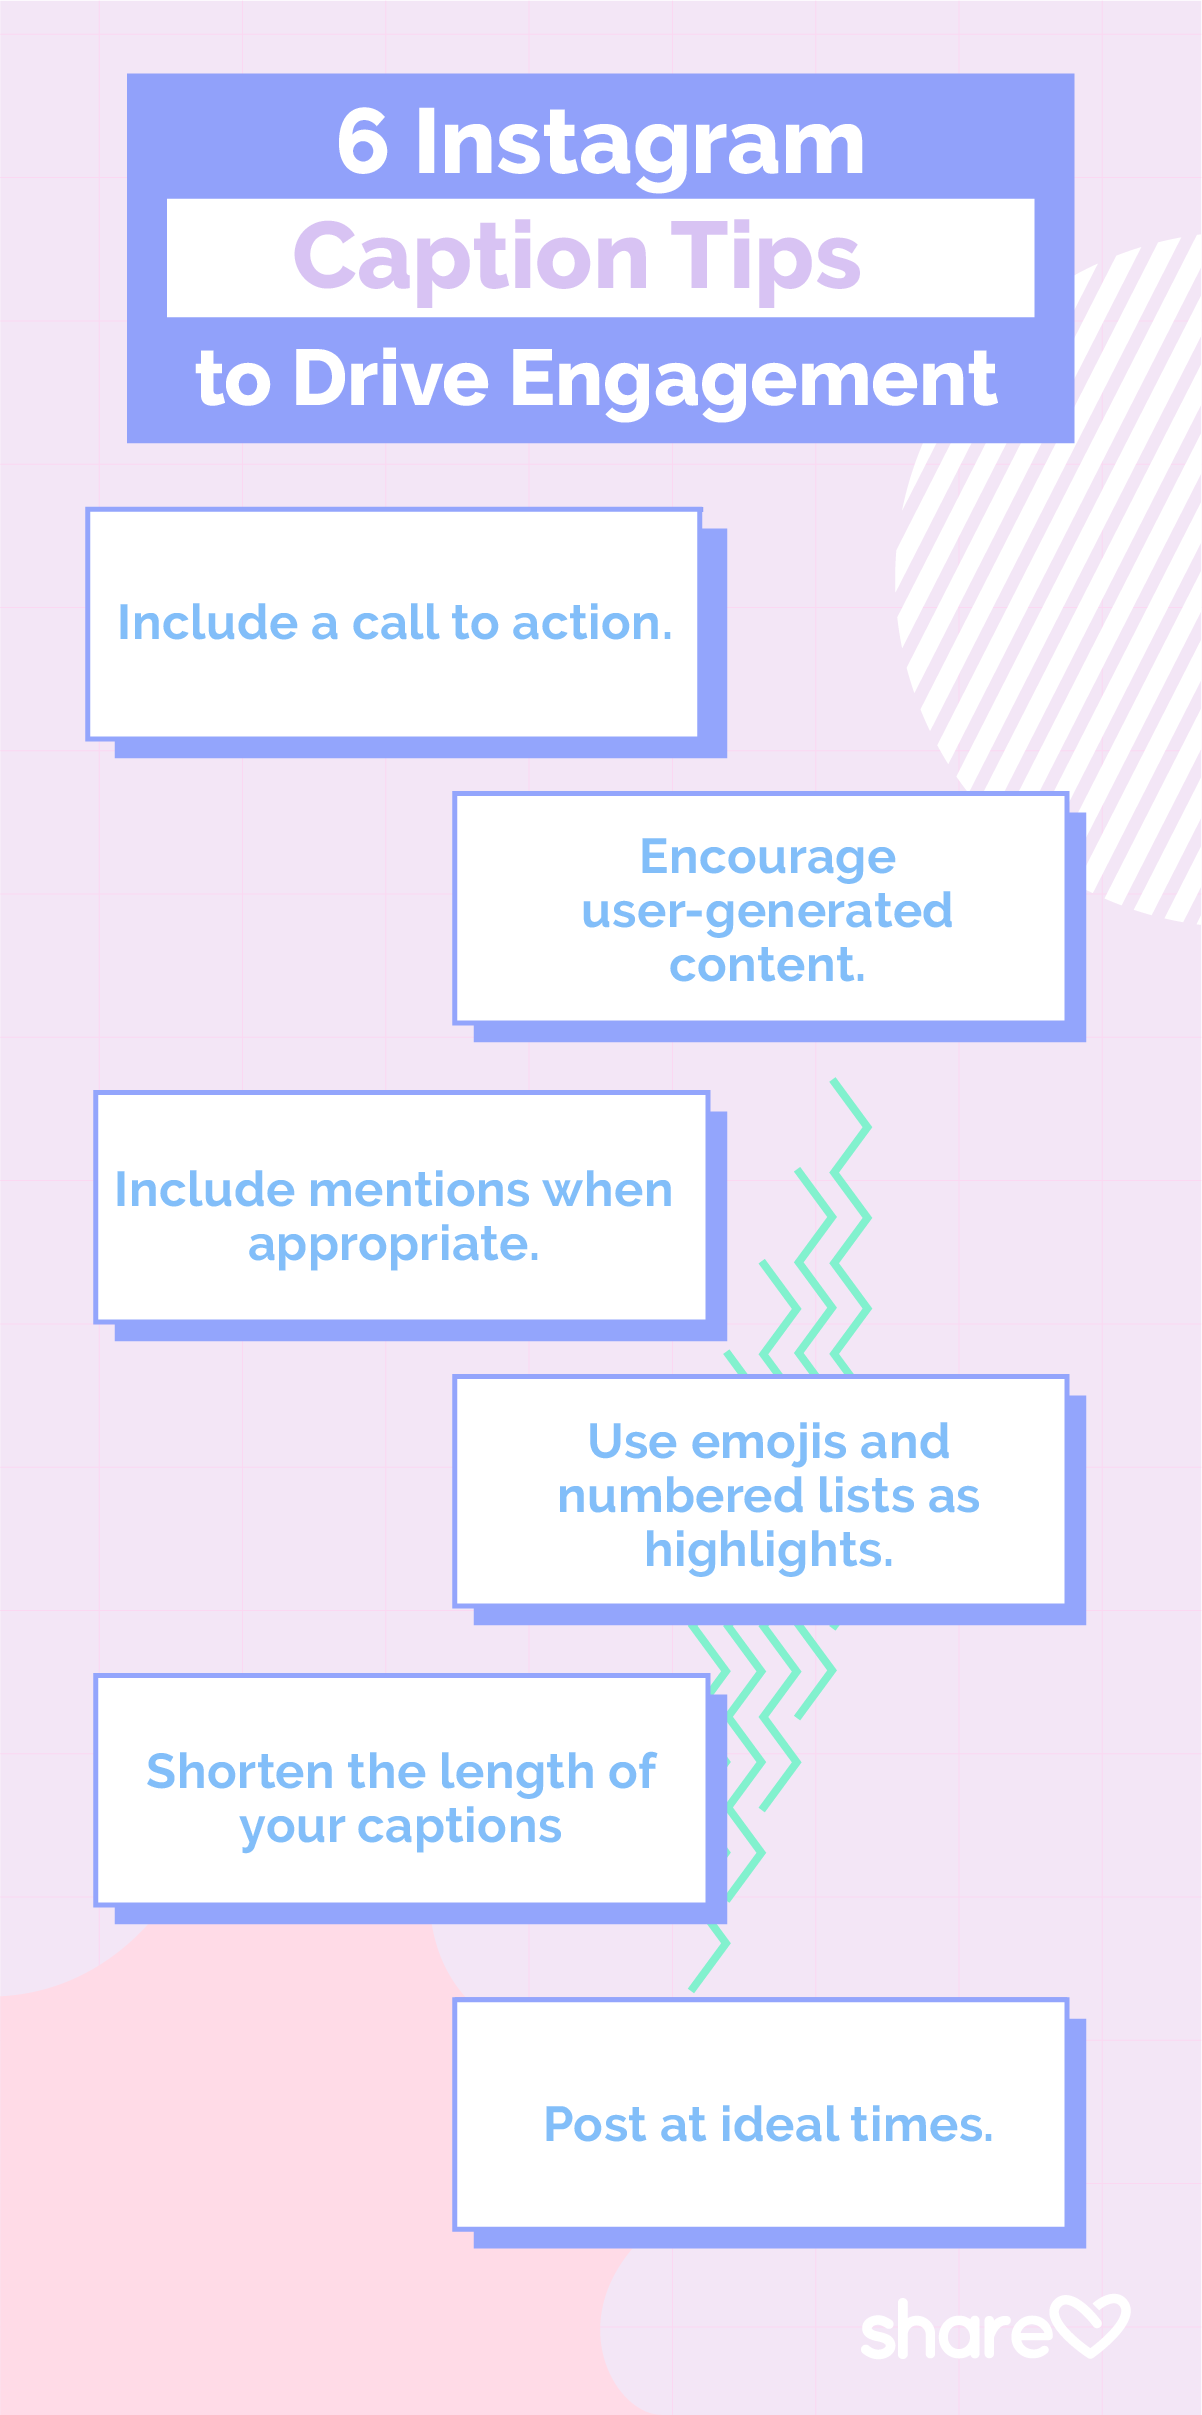 6 Instagram Caption Tips to drive engagement